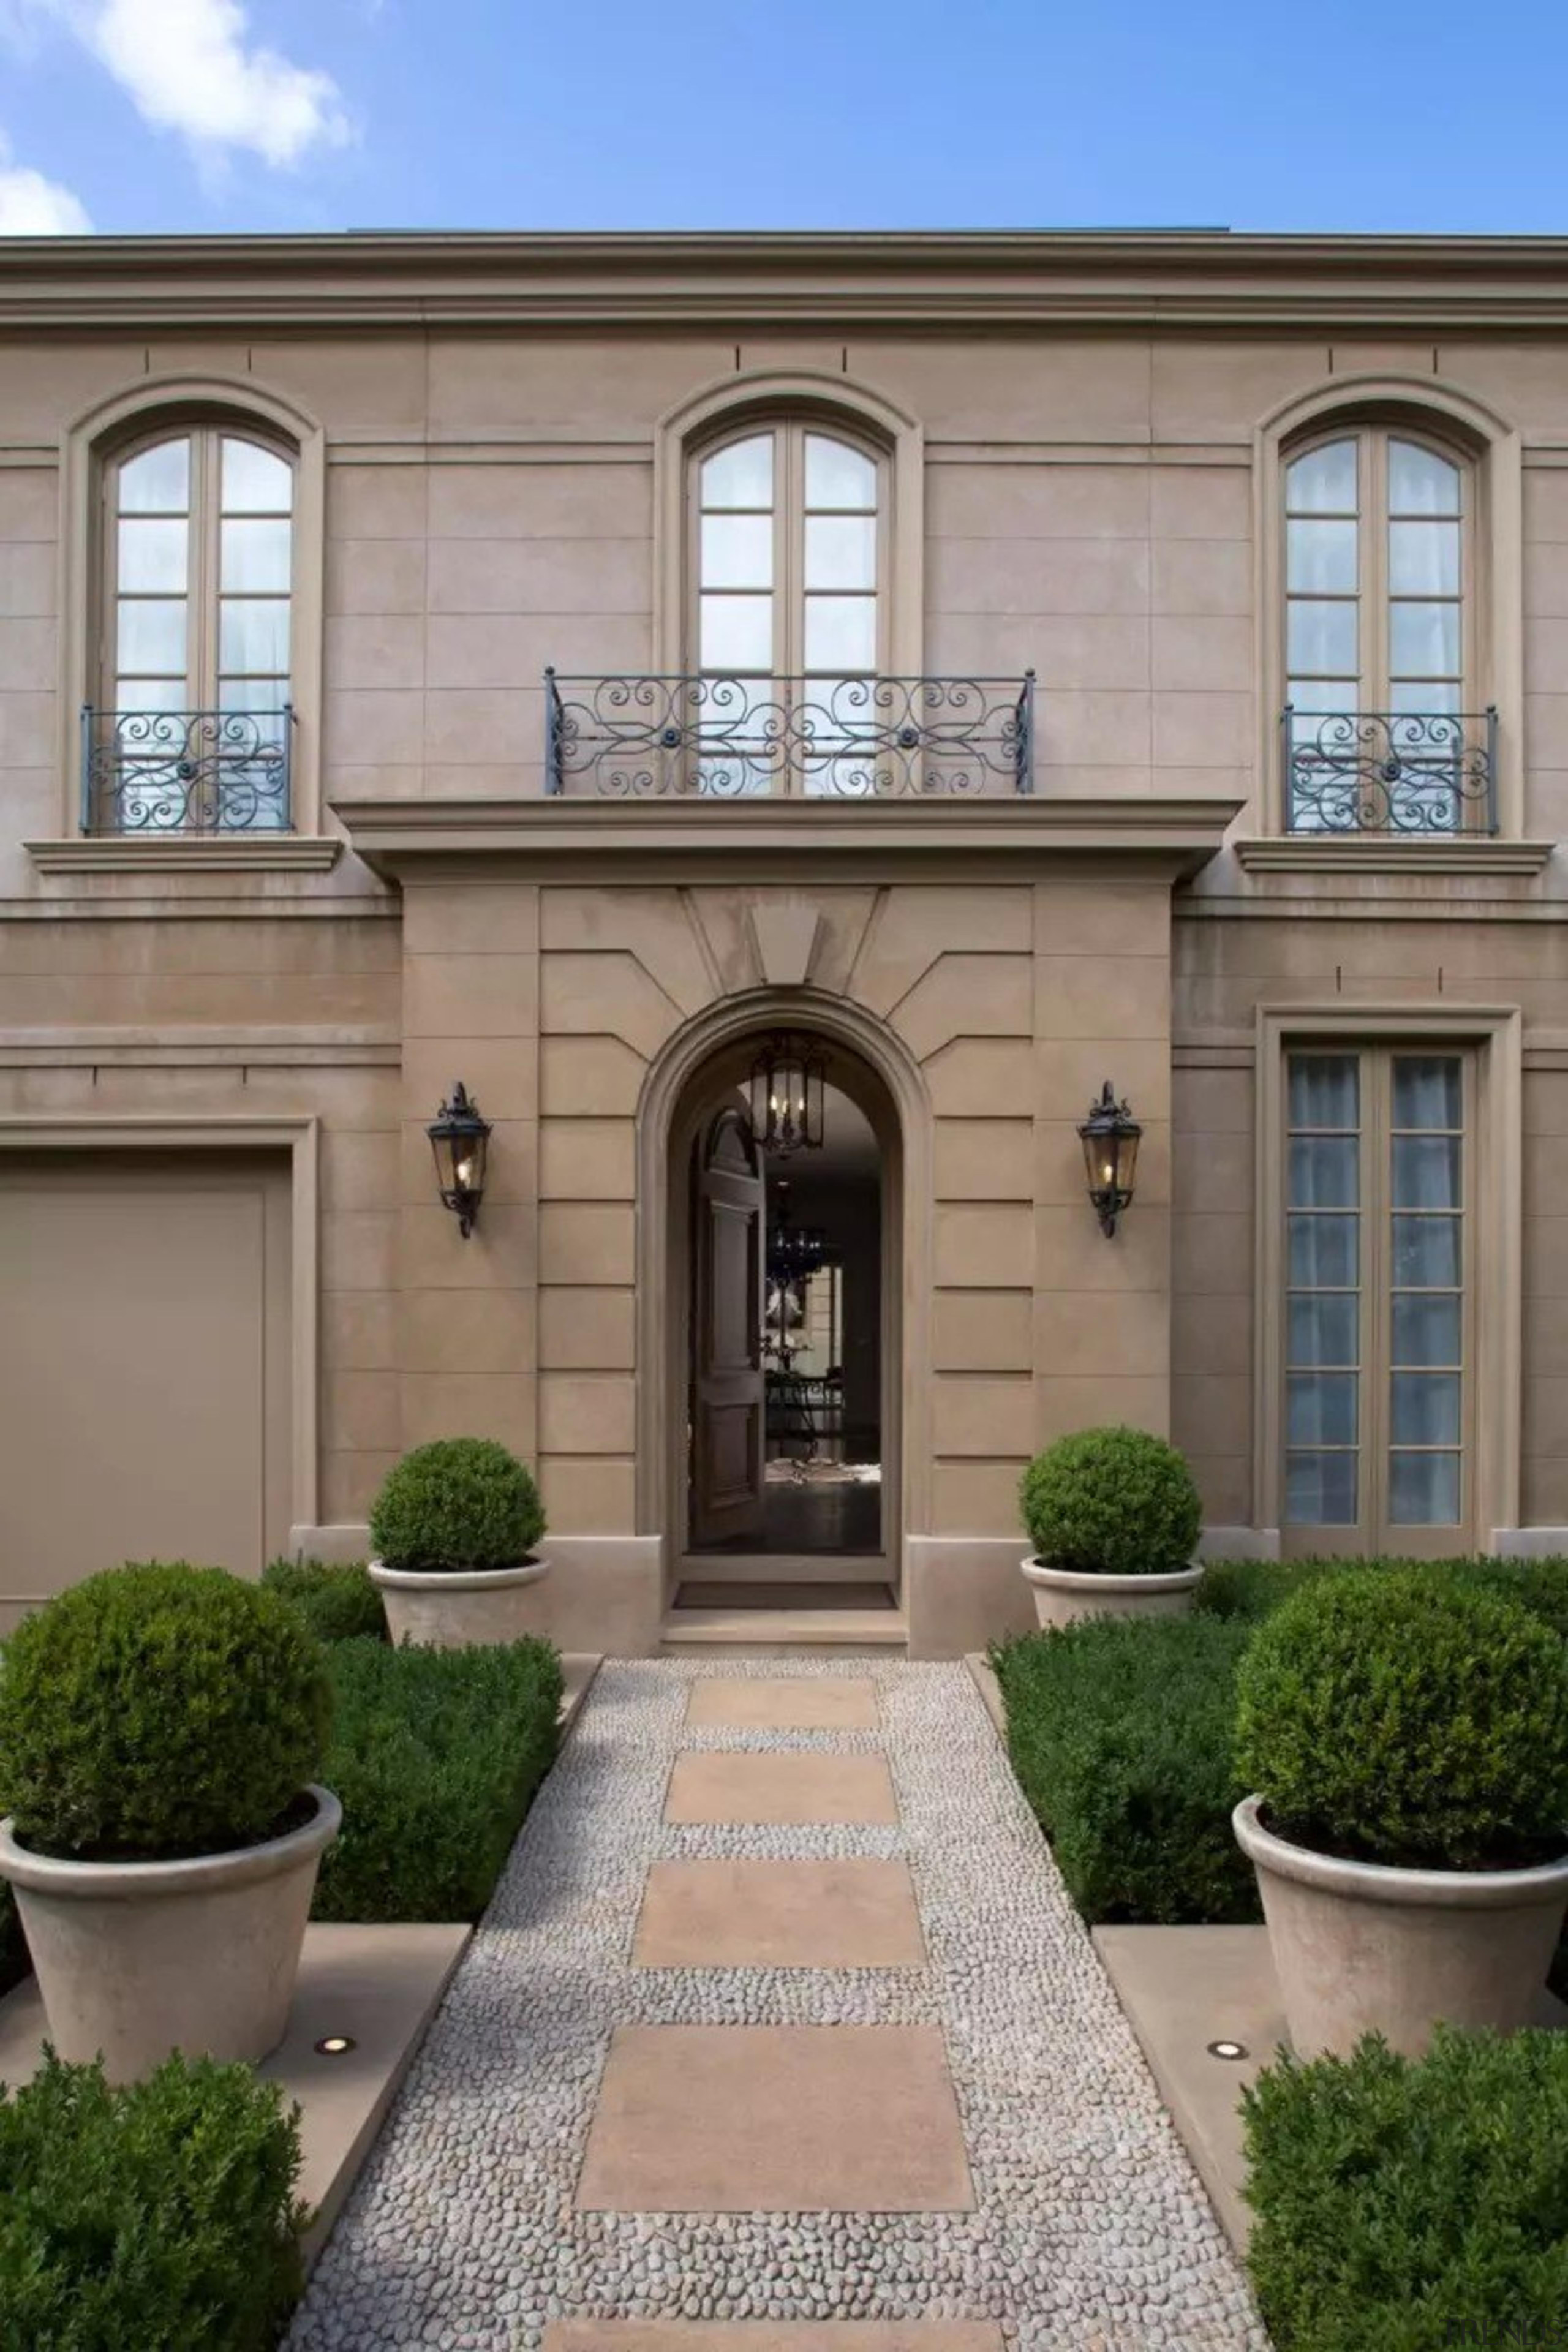 French classic-style residence by Massimo Interiors architecture, building, courtyard, door, estate, facade, historic house, home, house, landscaping, mansion, property, real estate, residential area, walkway, window, gray